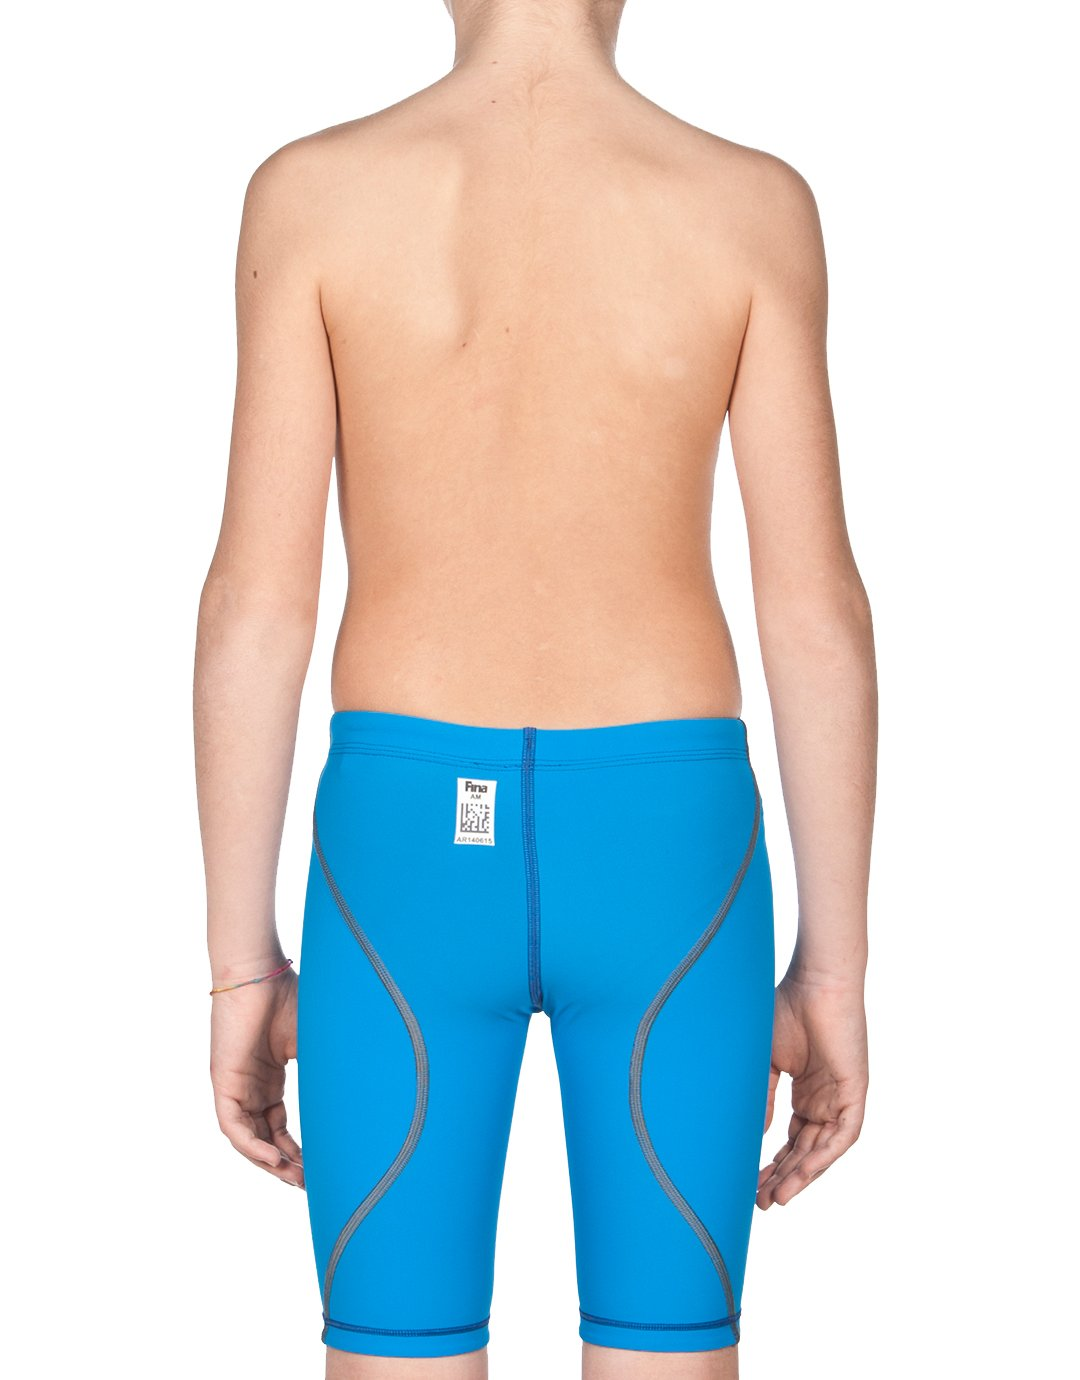 ca6eaa5f4a058 Arena Boys Powerskin ST 2 Jammer - Royal | Simply Swim UK